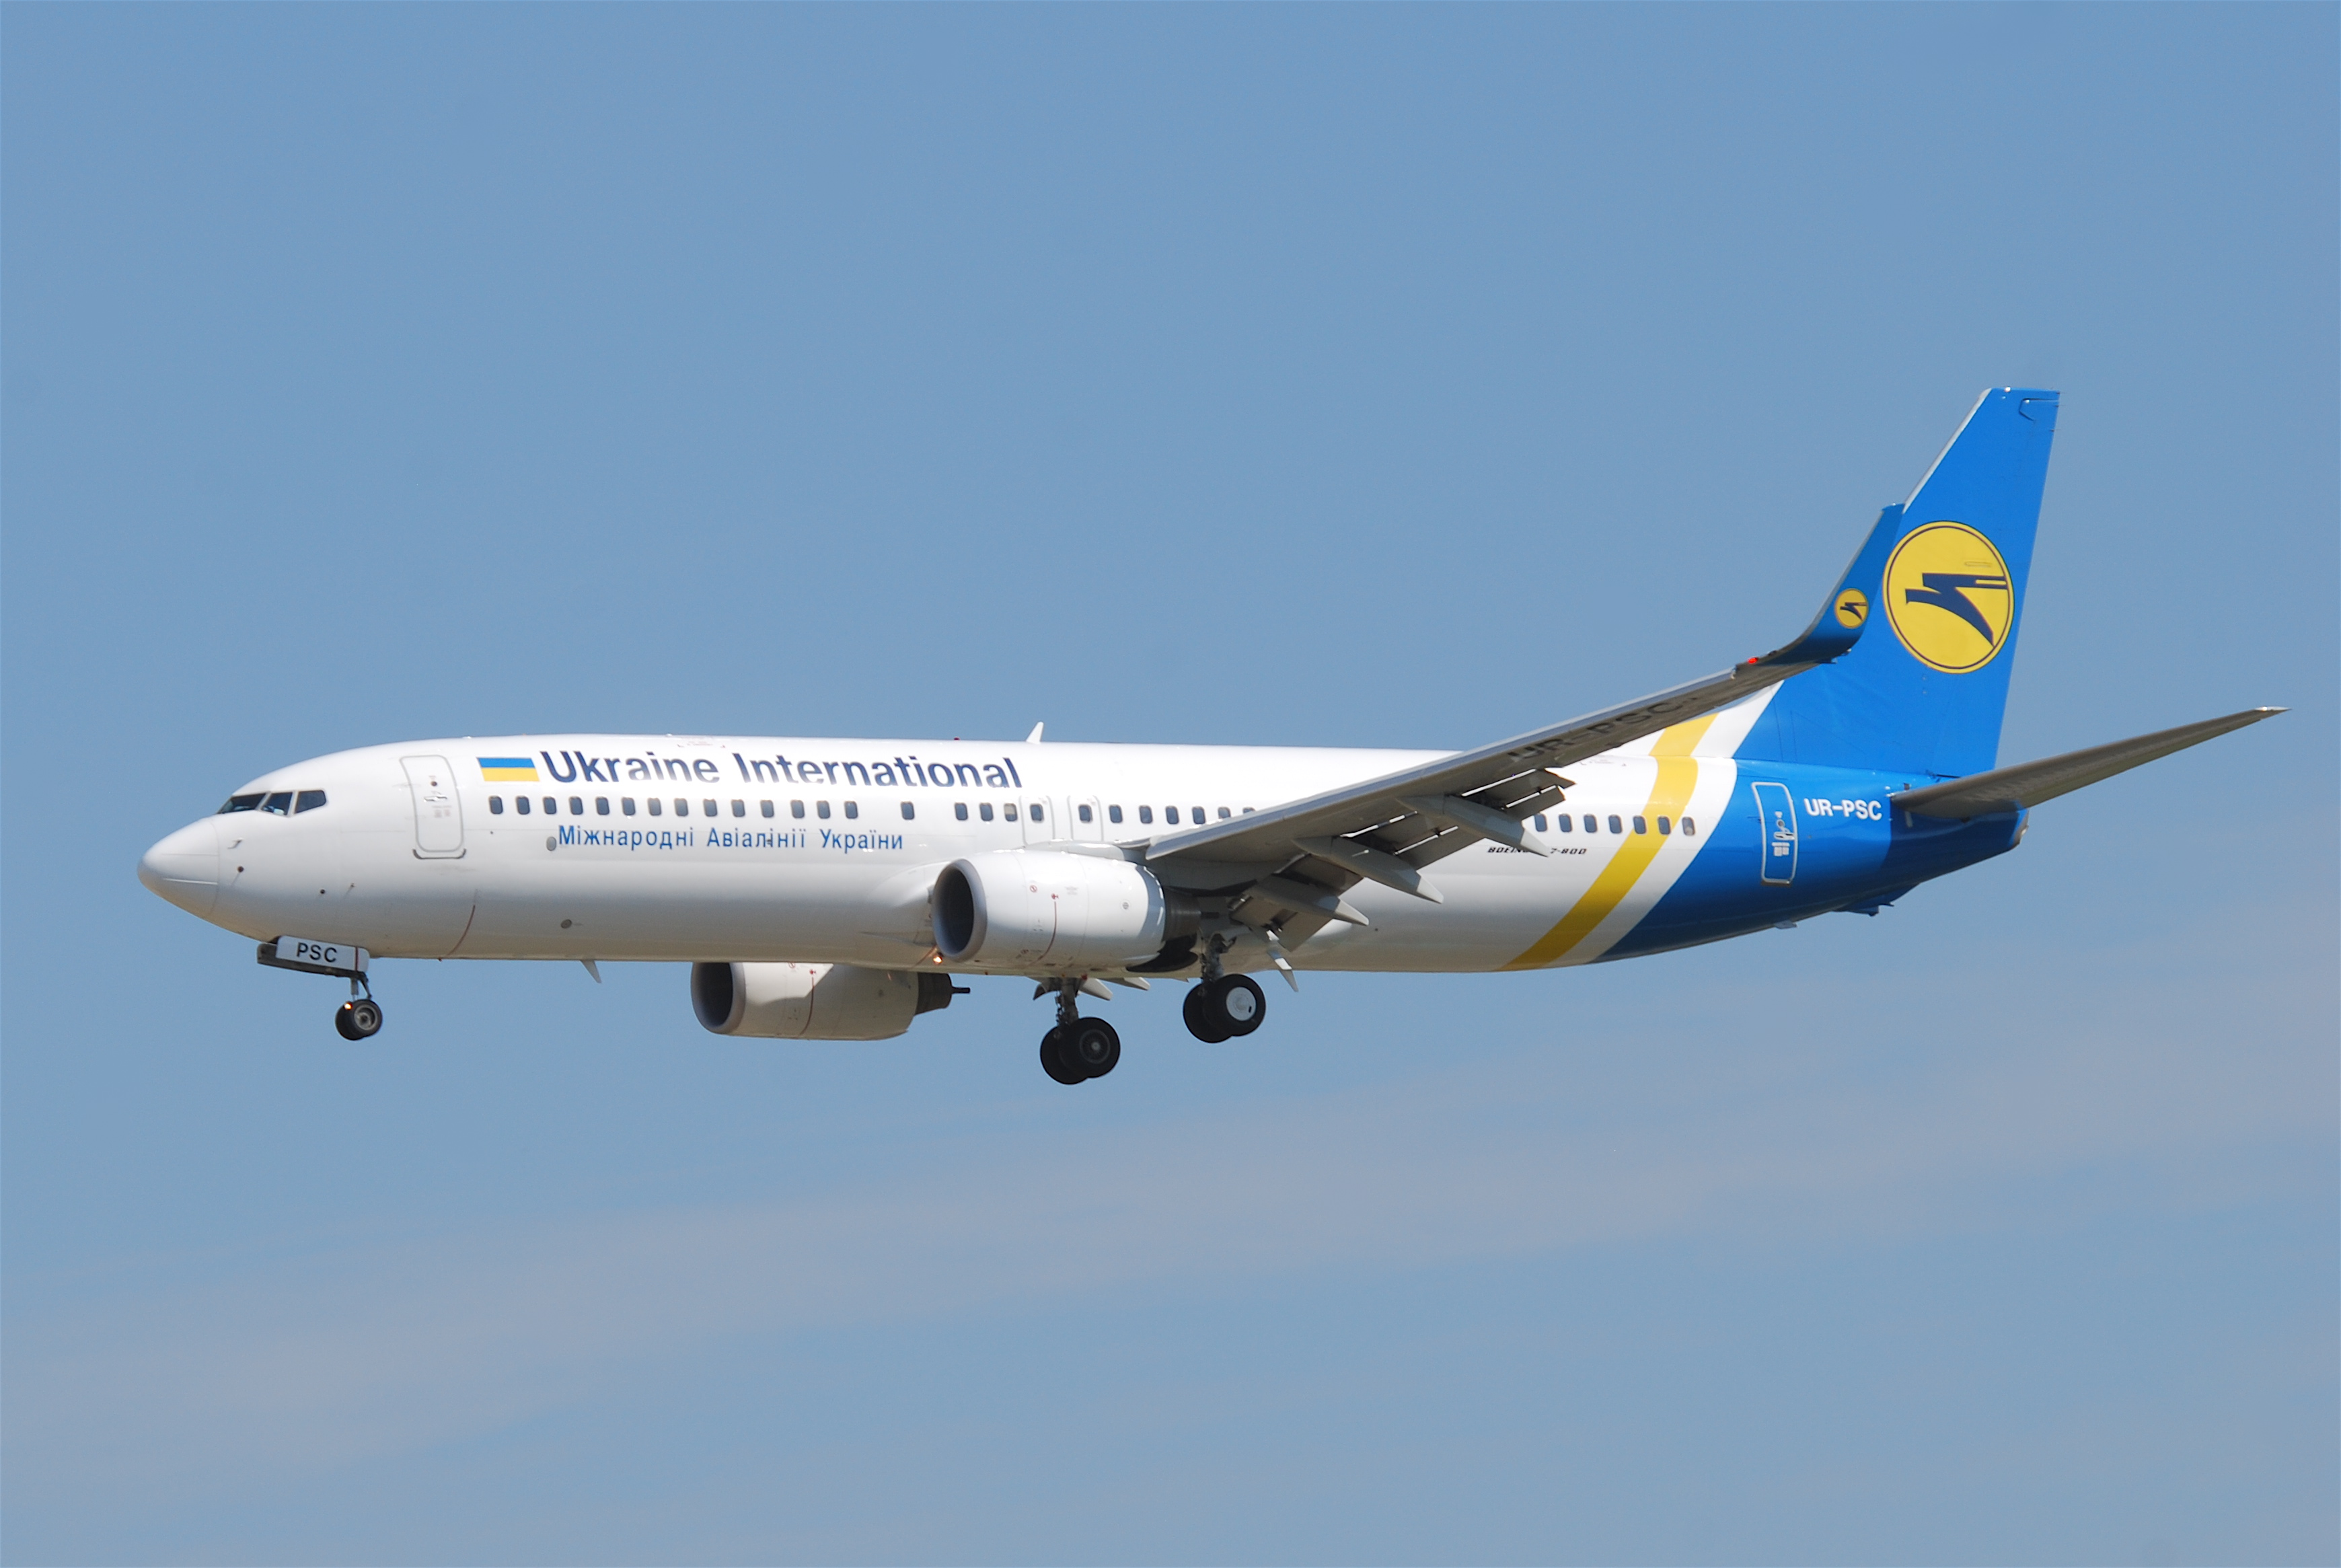 Ukrainian Airlines Plane Crash